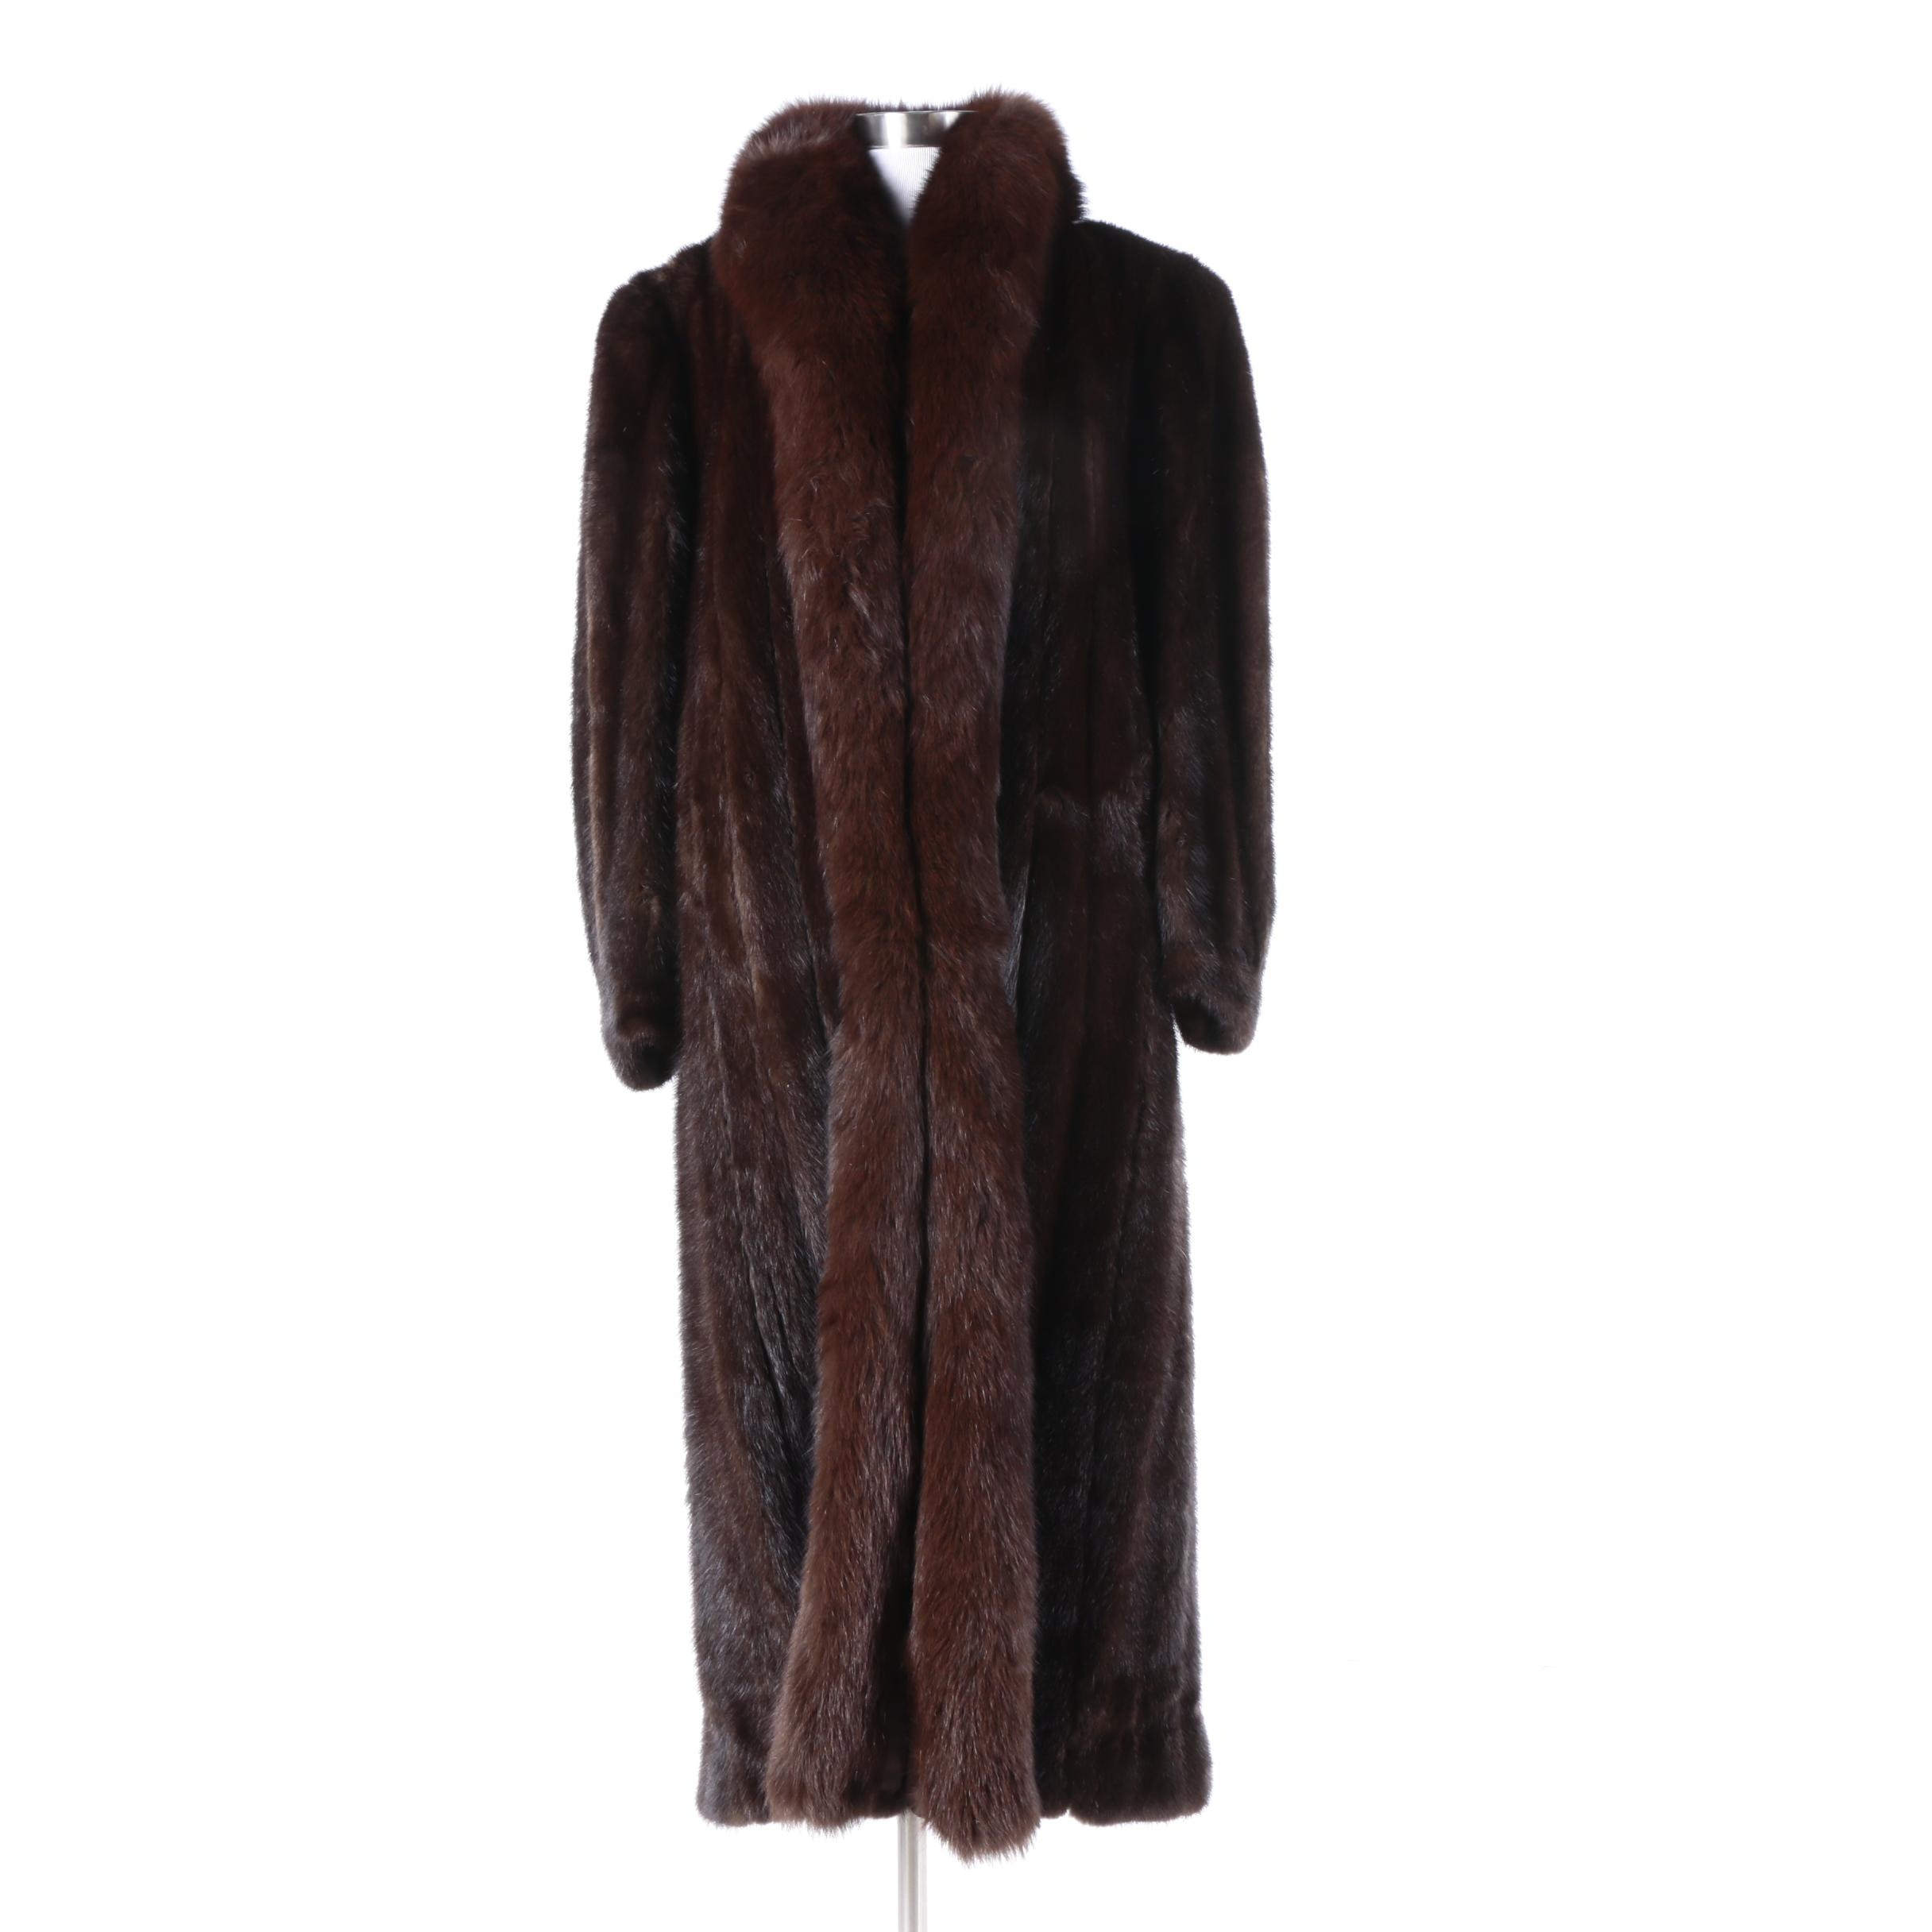 The Evan's Collection Full-Length Dark Brown Mink Fur Coat With Fox Fur Trim